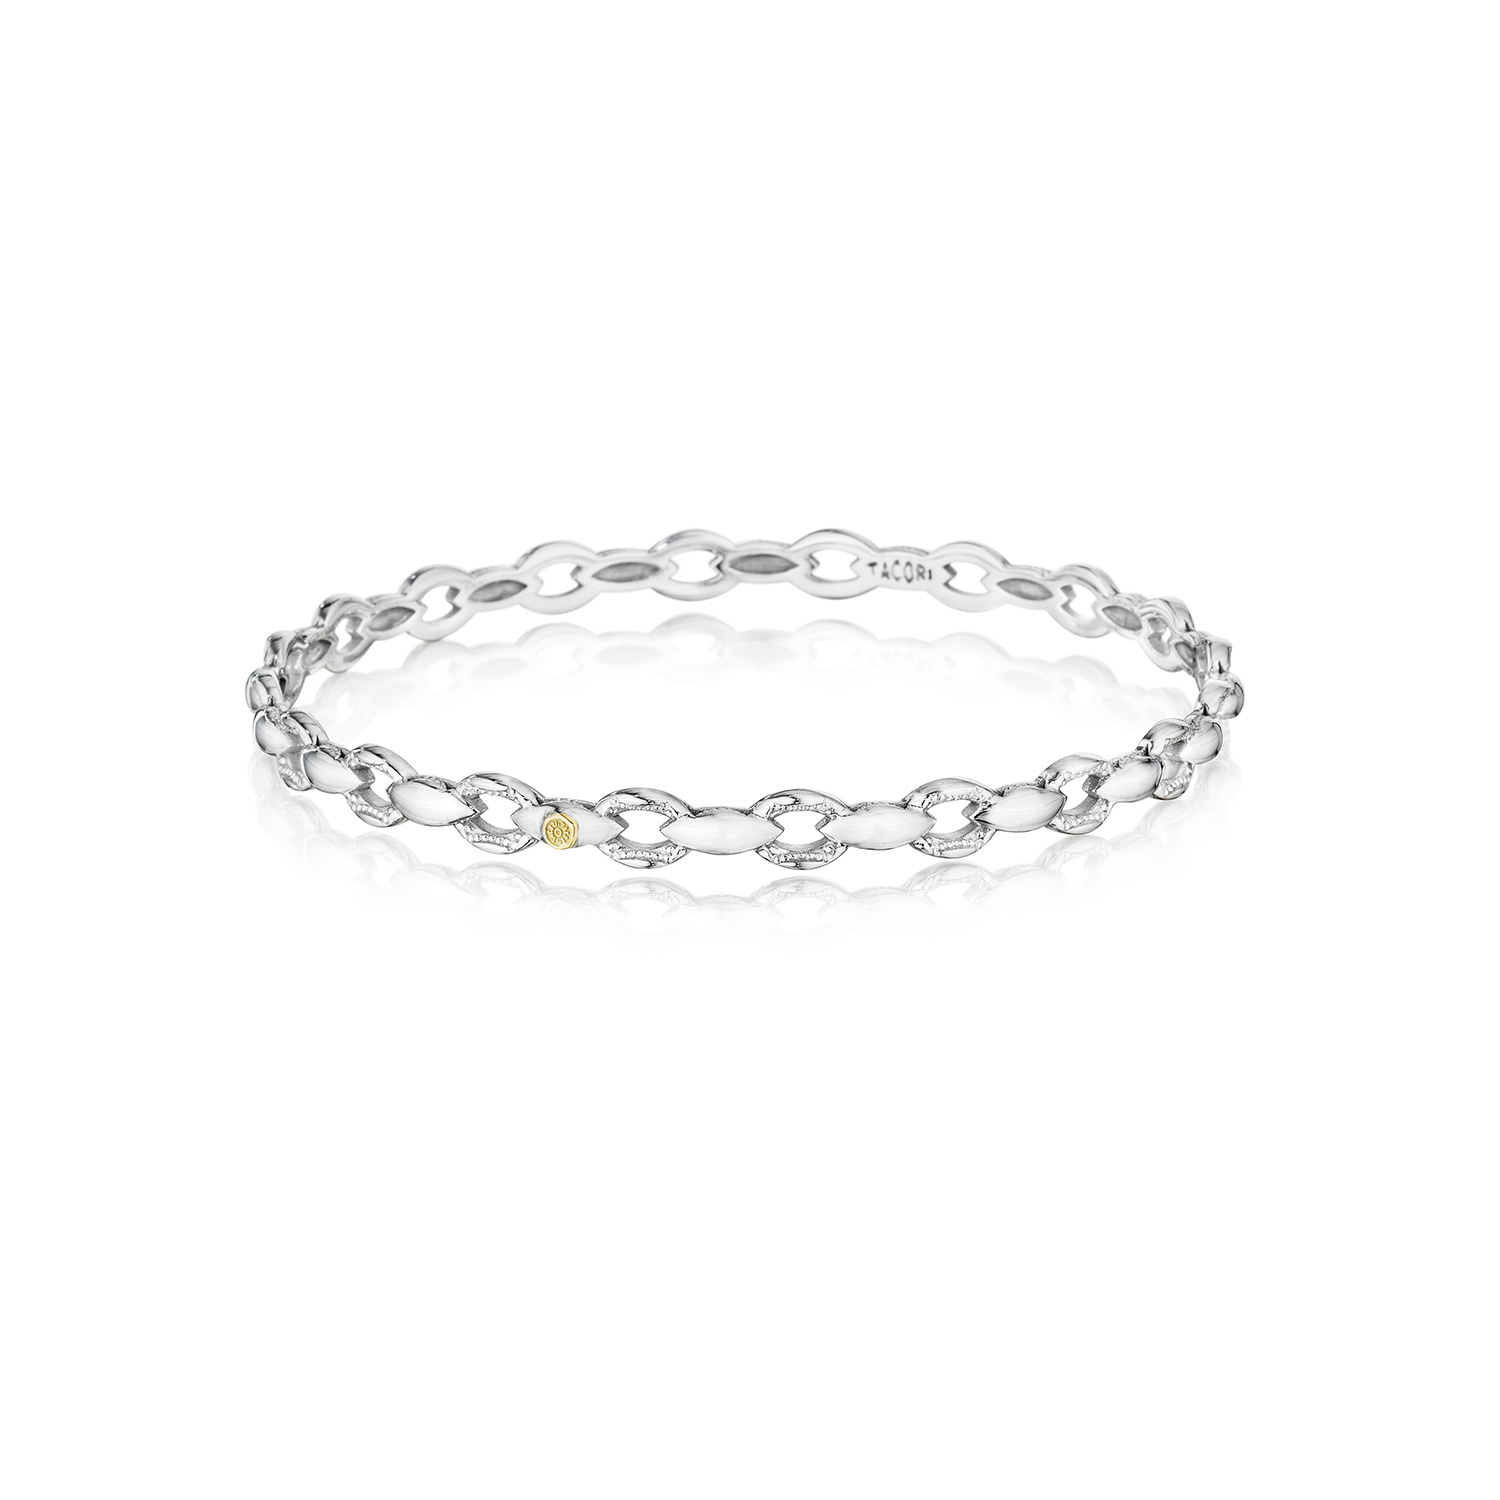 tacori engagement rings jewelry sterling silver links bracelet